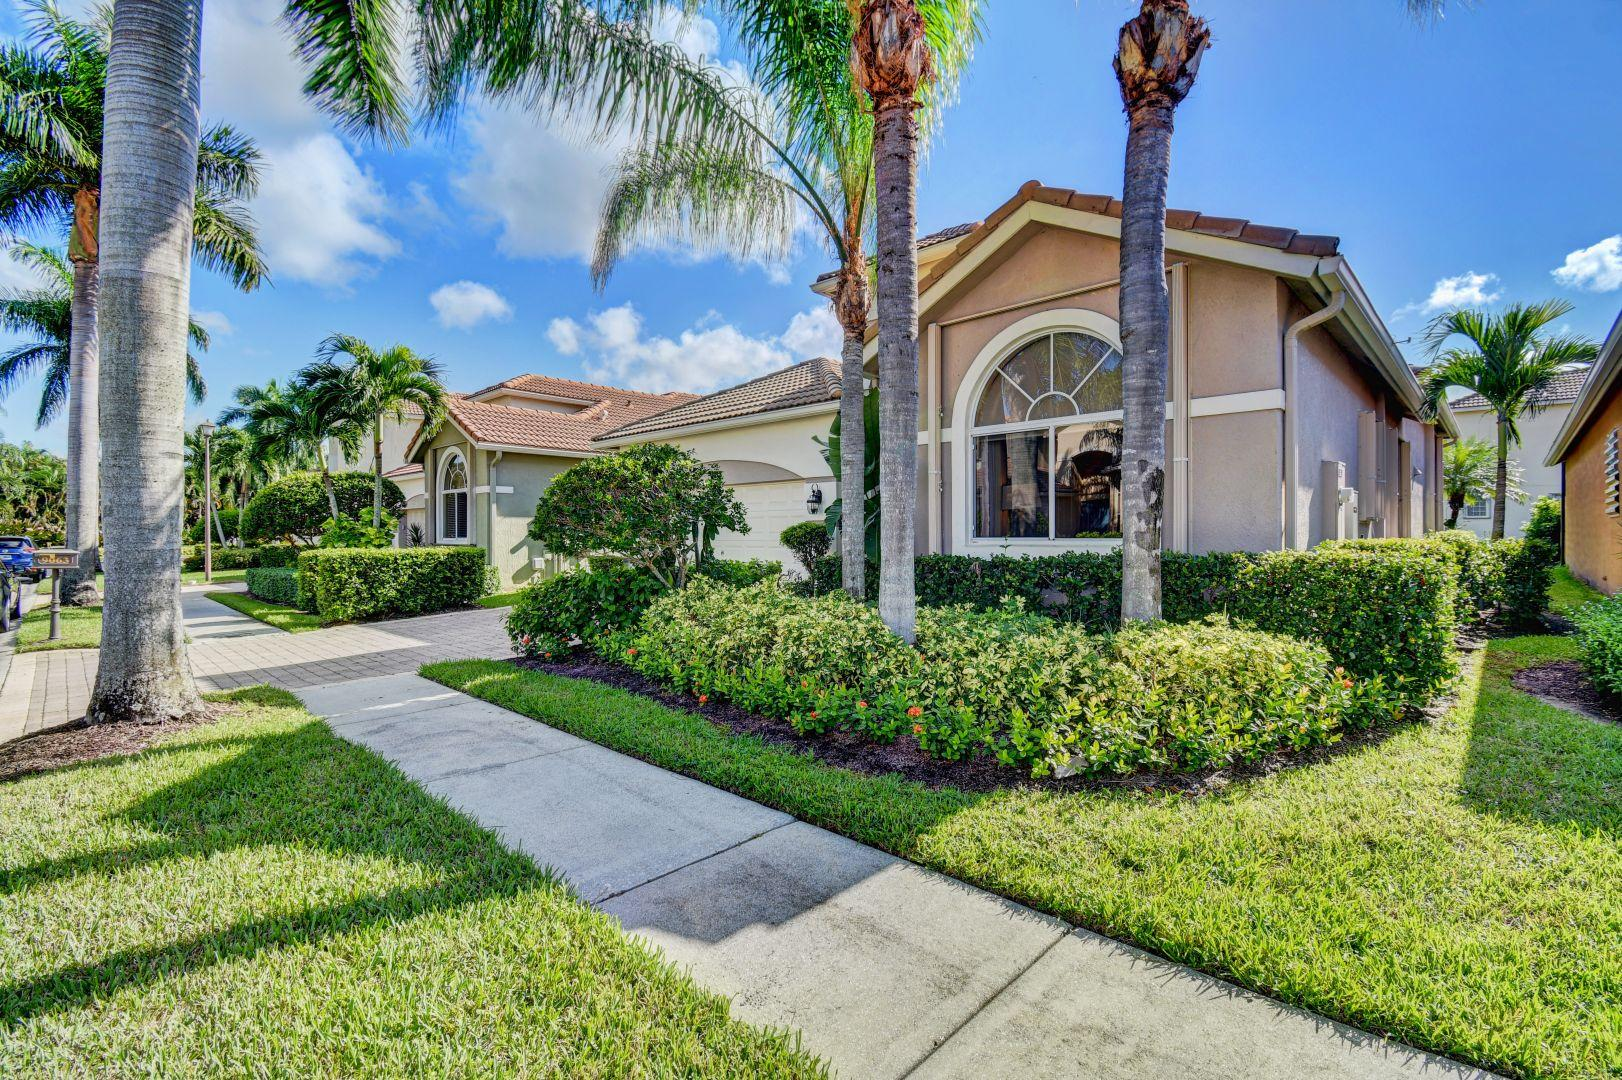 Home for sale in Ibis The Grande West Palm Beach Florida